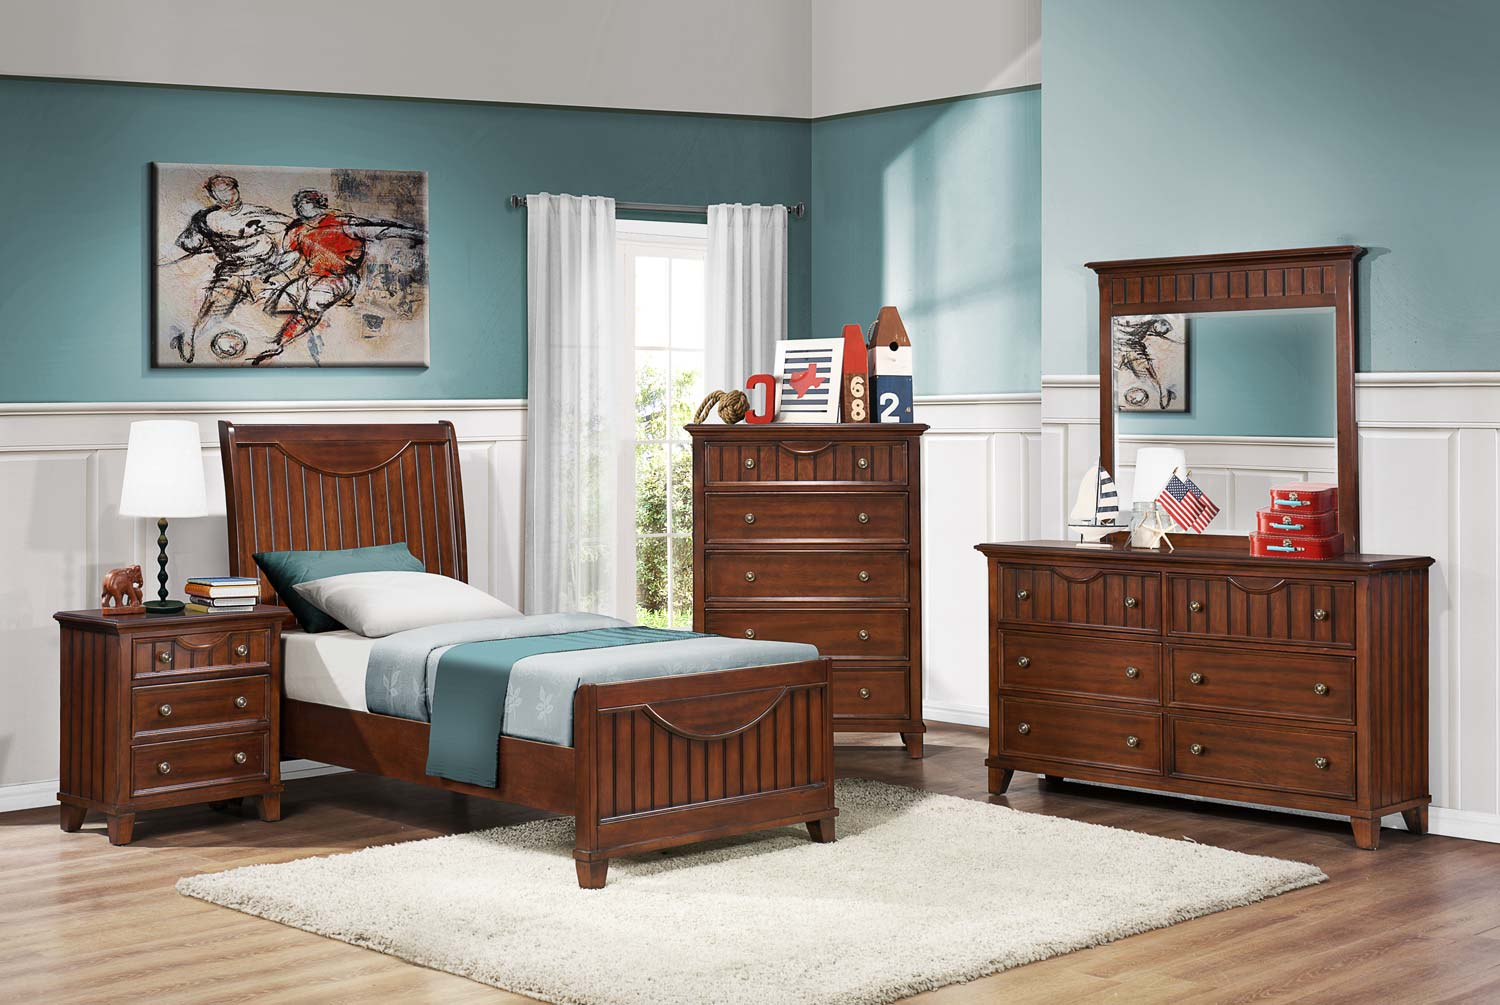 Homelegance Alyssa Youth Bedroom Set - Warm Brown Cherry B2136TC